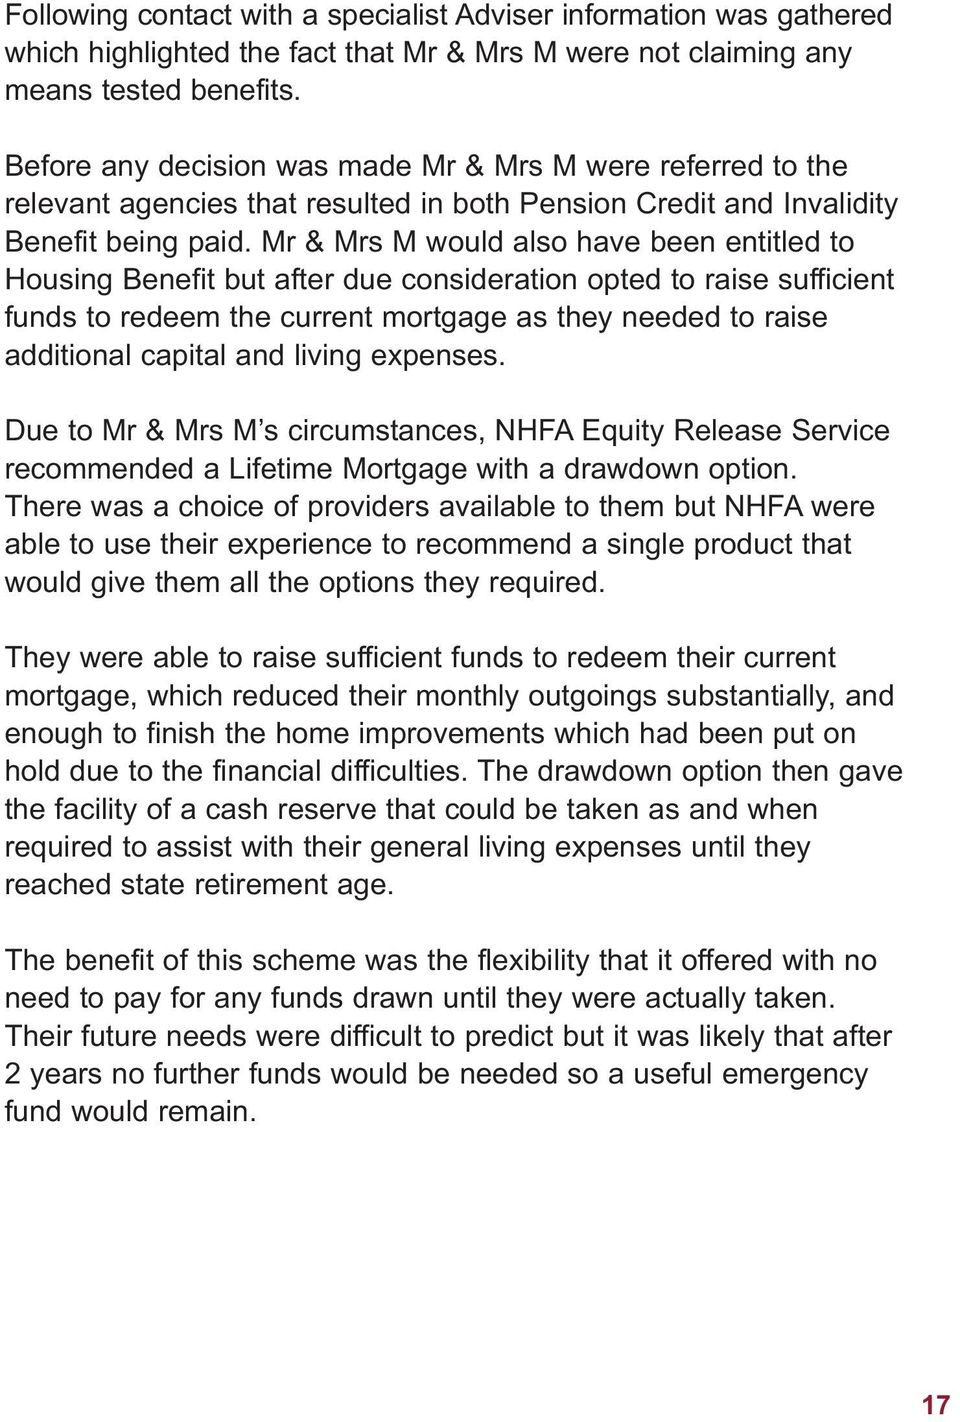 Mr & Mrs M would also have been entitled to Housing Benefit but after due consideration opted to raise sufficient funds to redeem the current mortgage as they needed to raise additional capital and